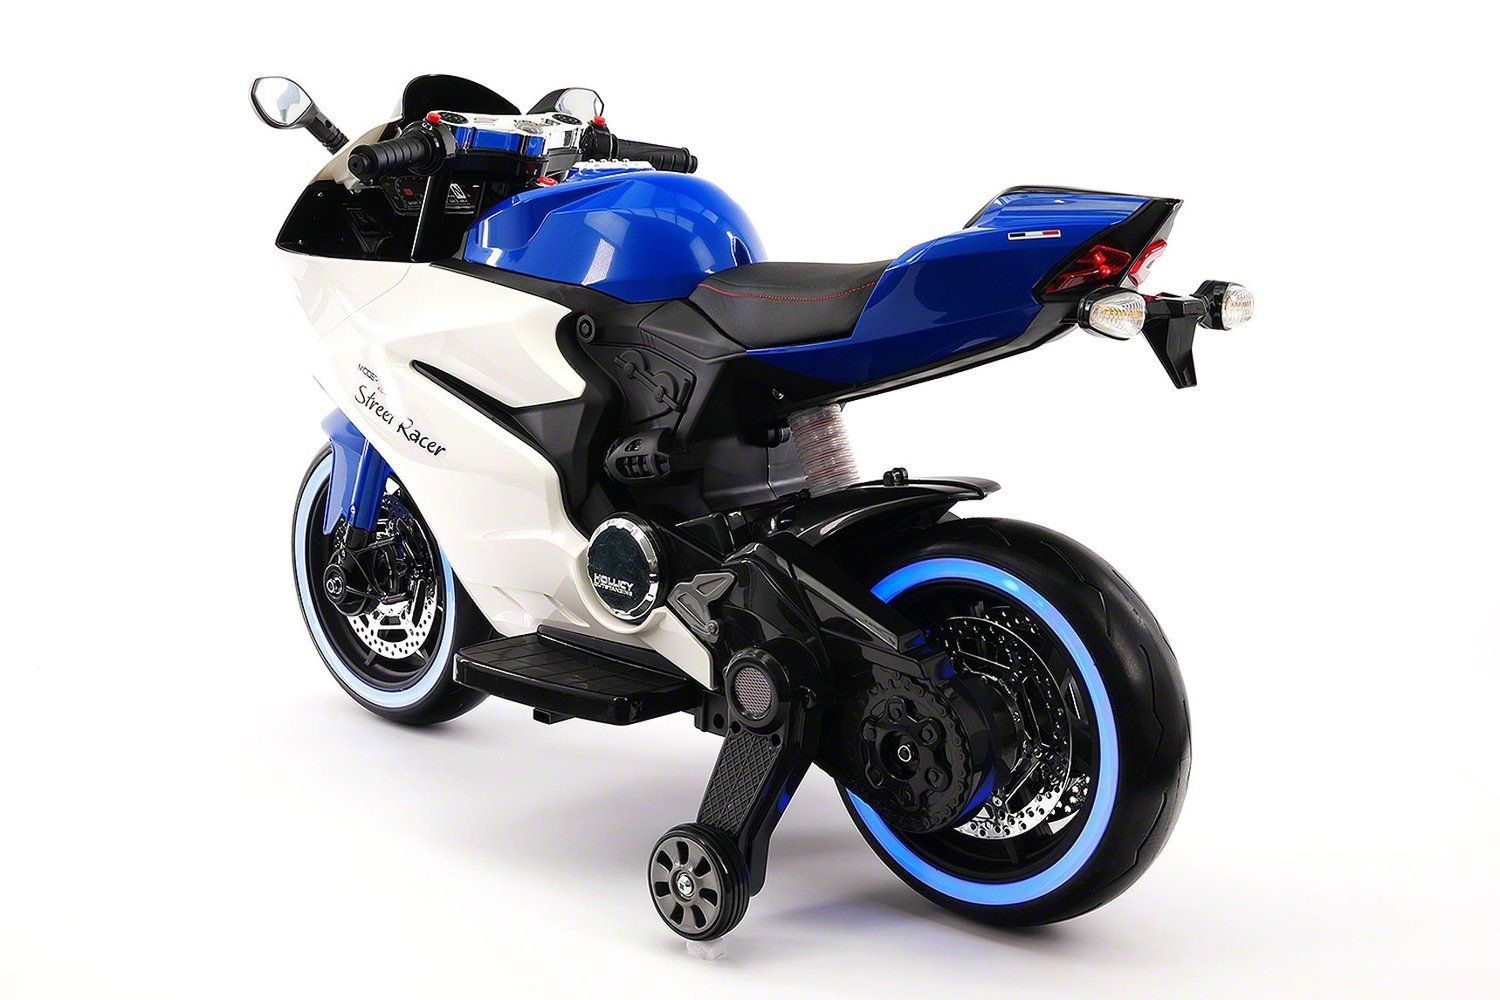 Blue Electric 12 Volt Motorcycle Ride On Toy For Kids Kids Ride On Ride On Toys Kids Motorcycle